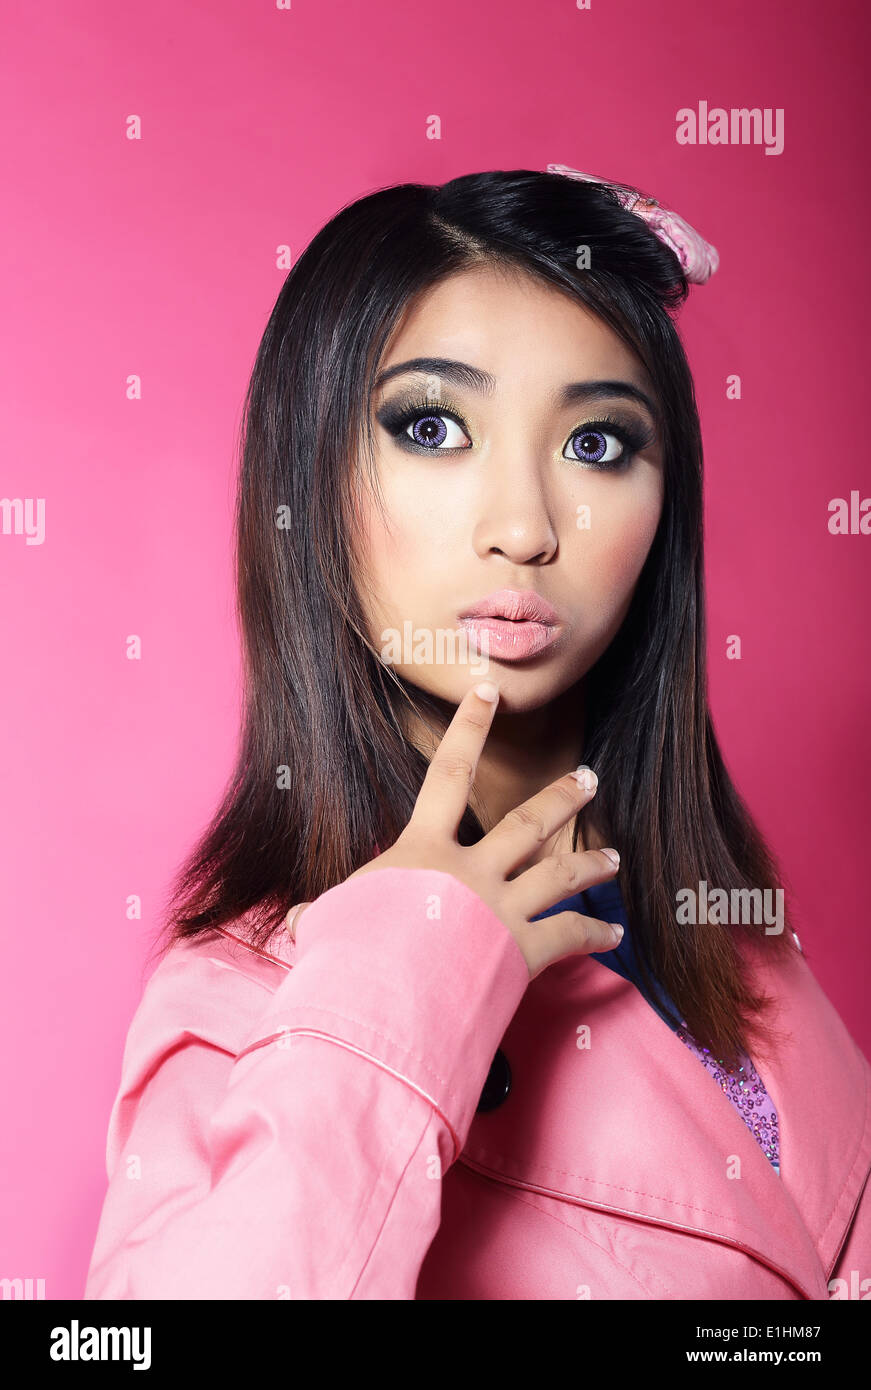 Attractiveness. Portrait of Asian Brunette with Big Surprised Eyes - Stock Image